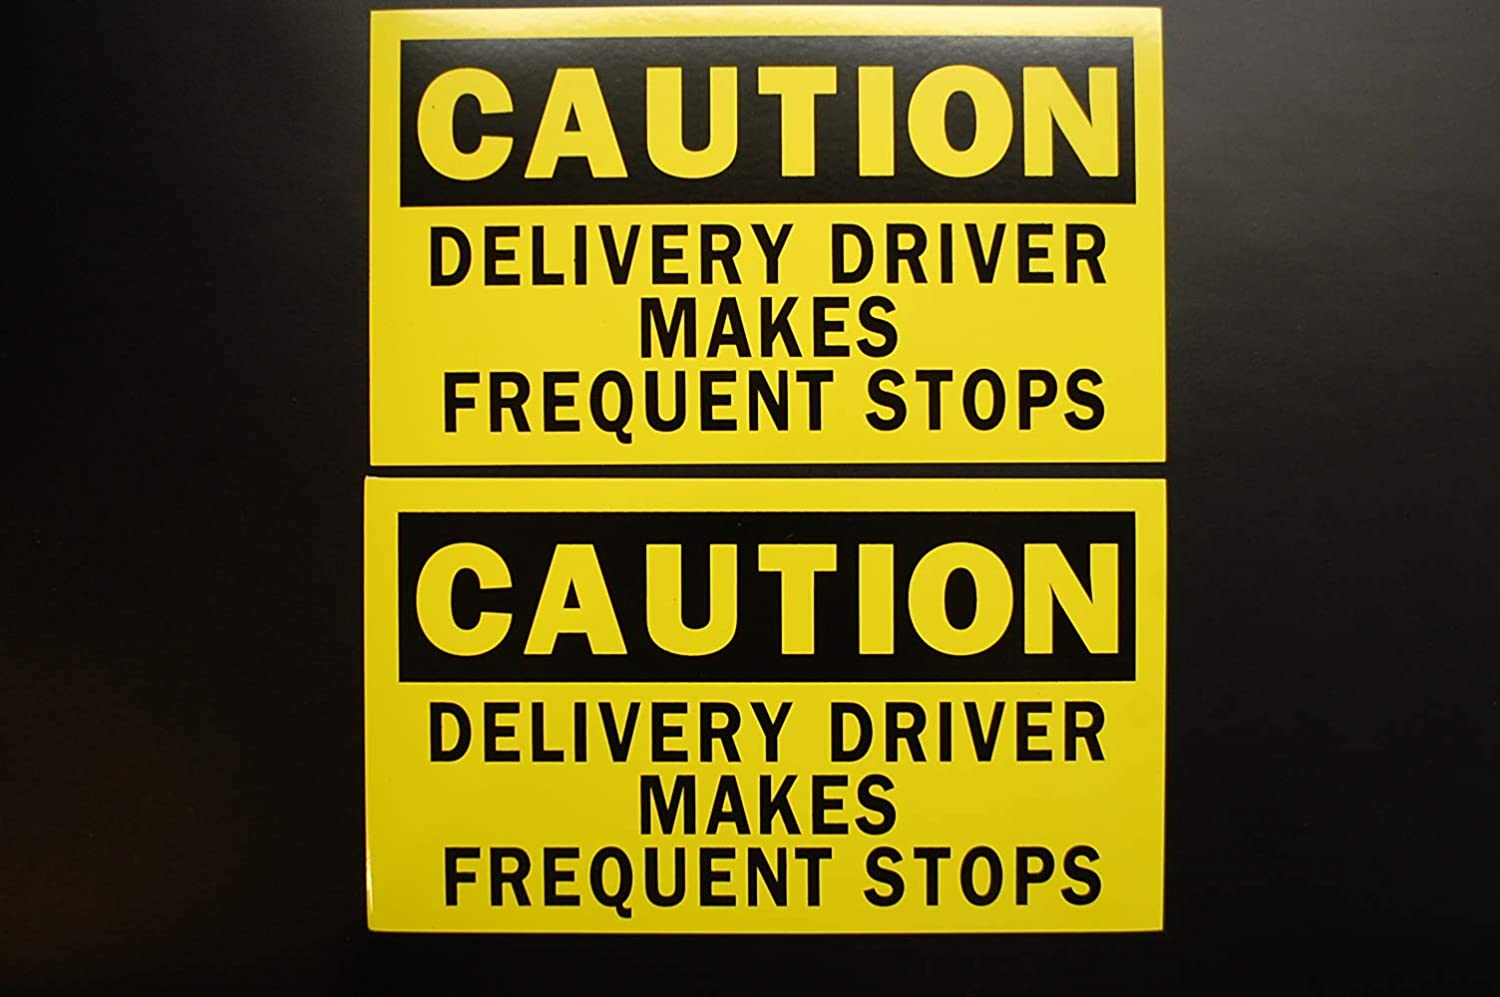 7 X 4 Waterproof 2 Pack Five Star Graphics Caution Delivery Driver Makes Frequent Stops Sticker Vinyl Decal 2XPS51